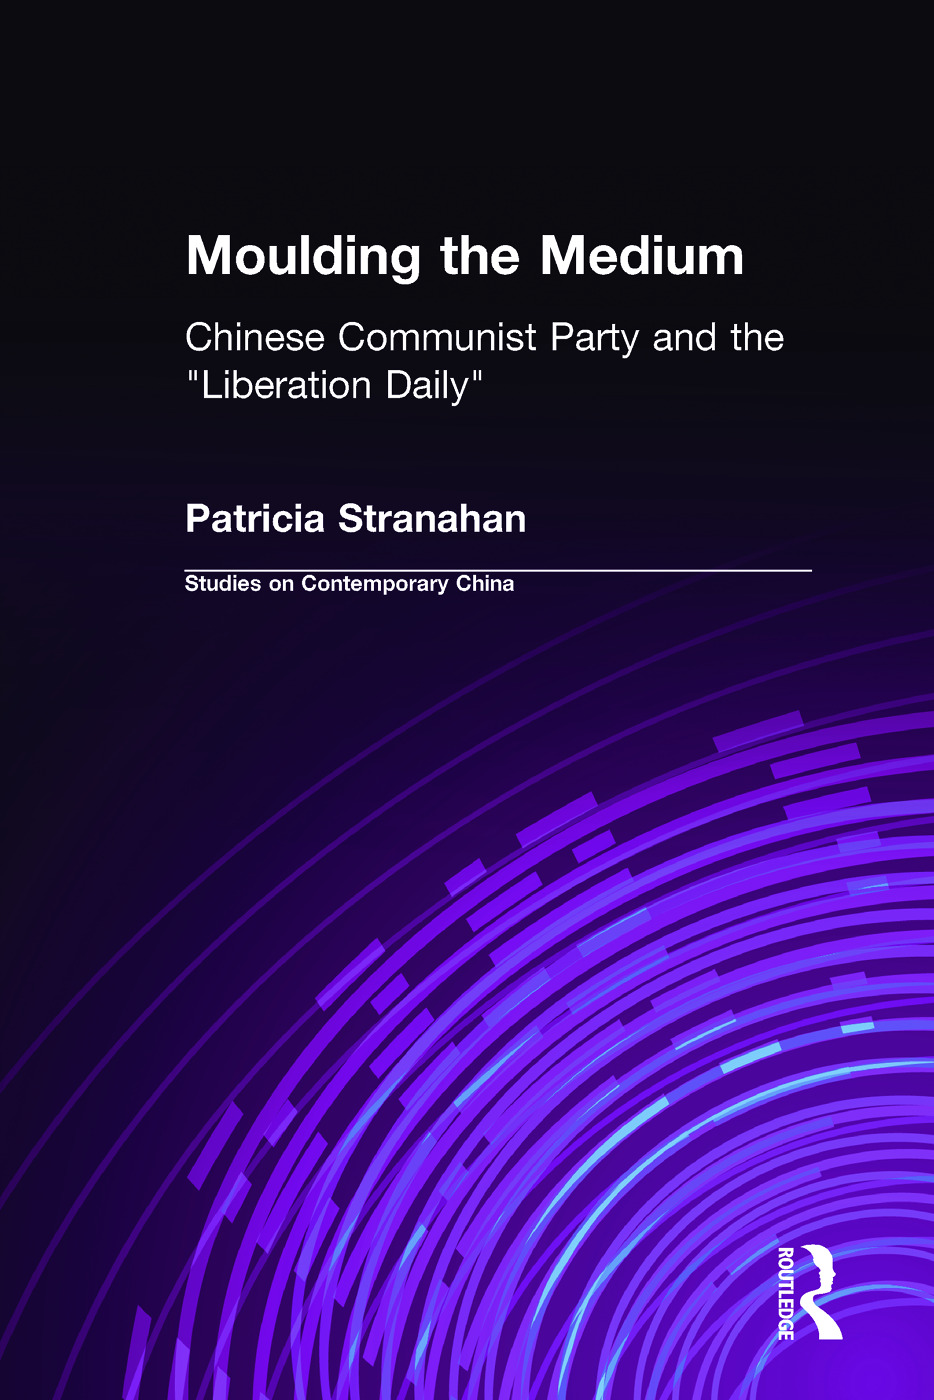 Moulding the Medium: Chinese Communist Party and the Liberation Daily: Chinese Communist Party and the